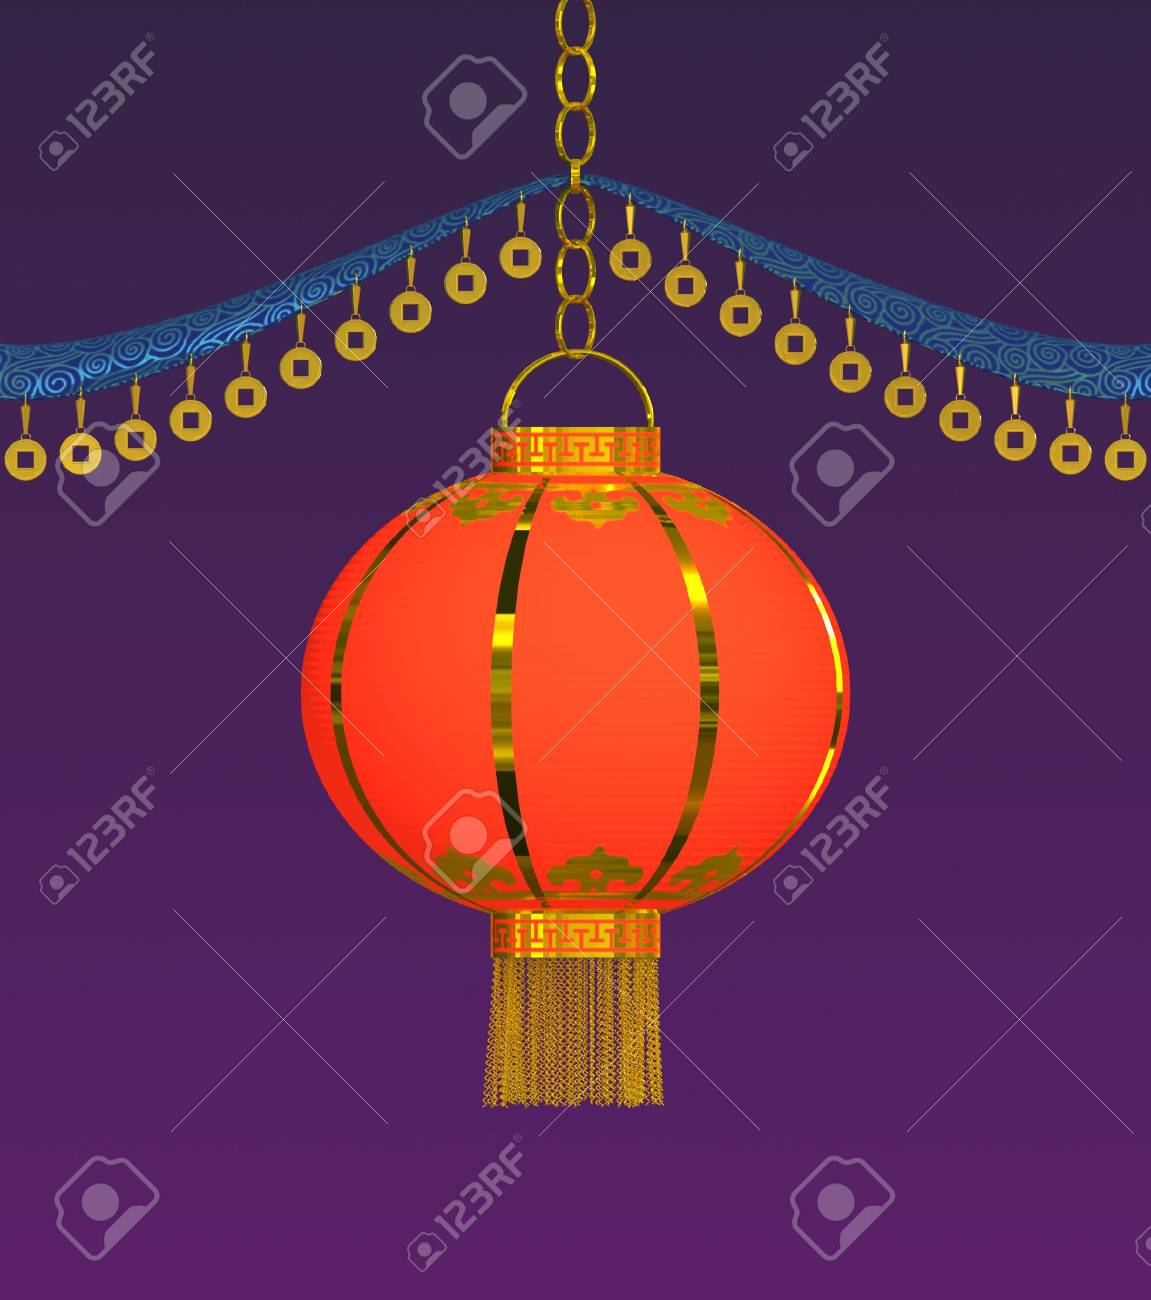 Chinese lantern. Traditional Chinese decor. 3d rendering. Stock Photo - 3454031